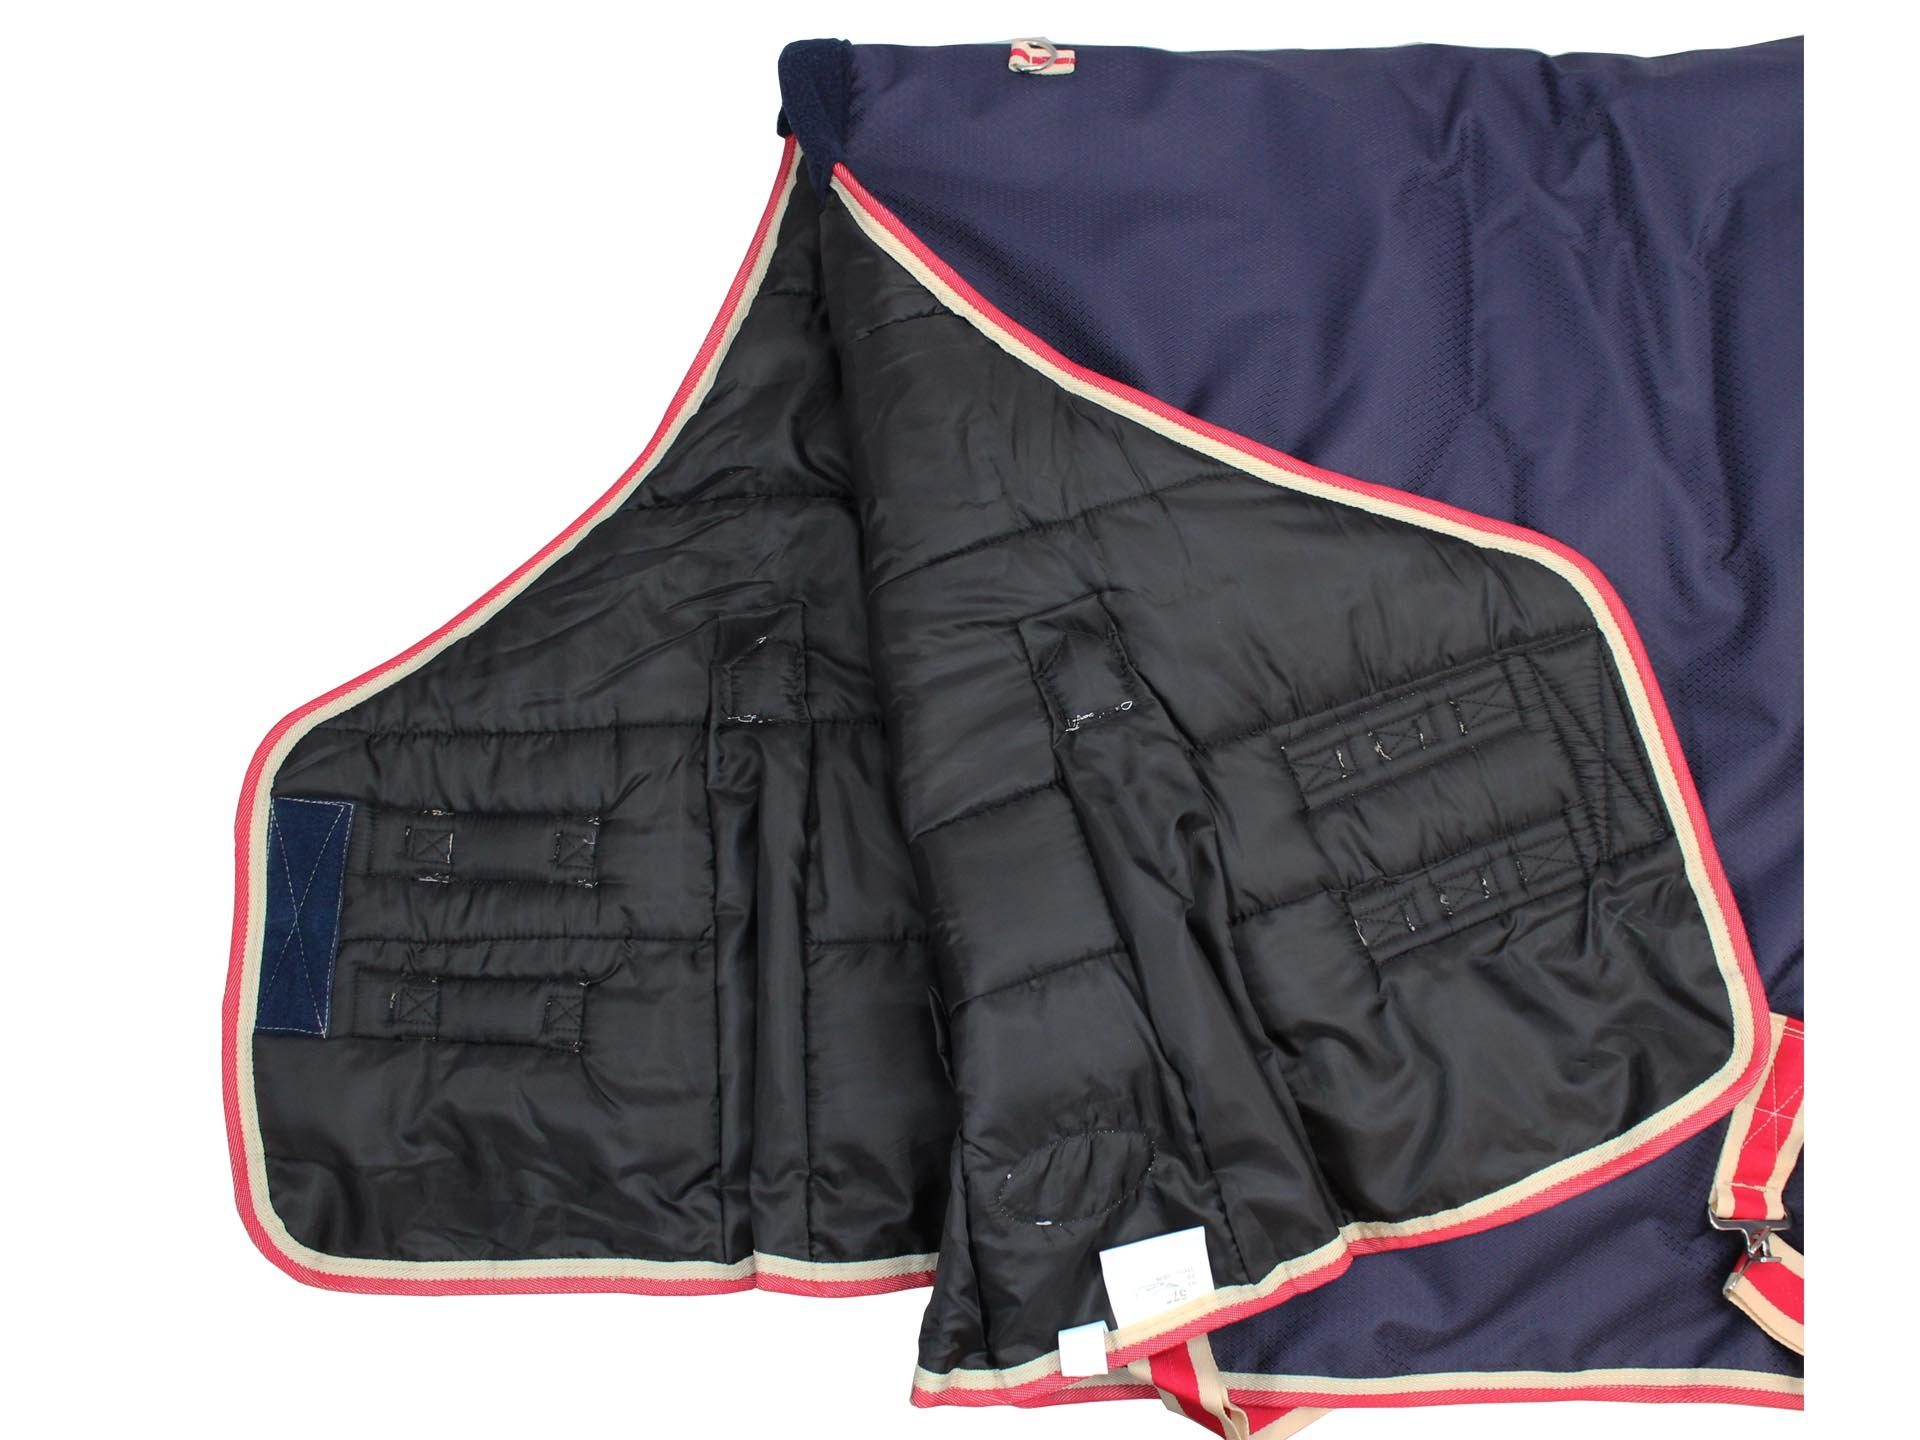 Derby Originals Heavy Duty 1200D Turnout Pony Blanket with Detachable Neck Cover, 64''